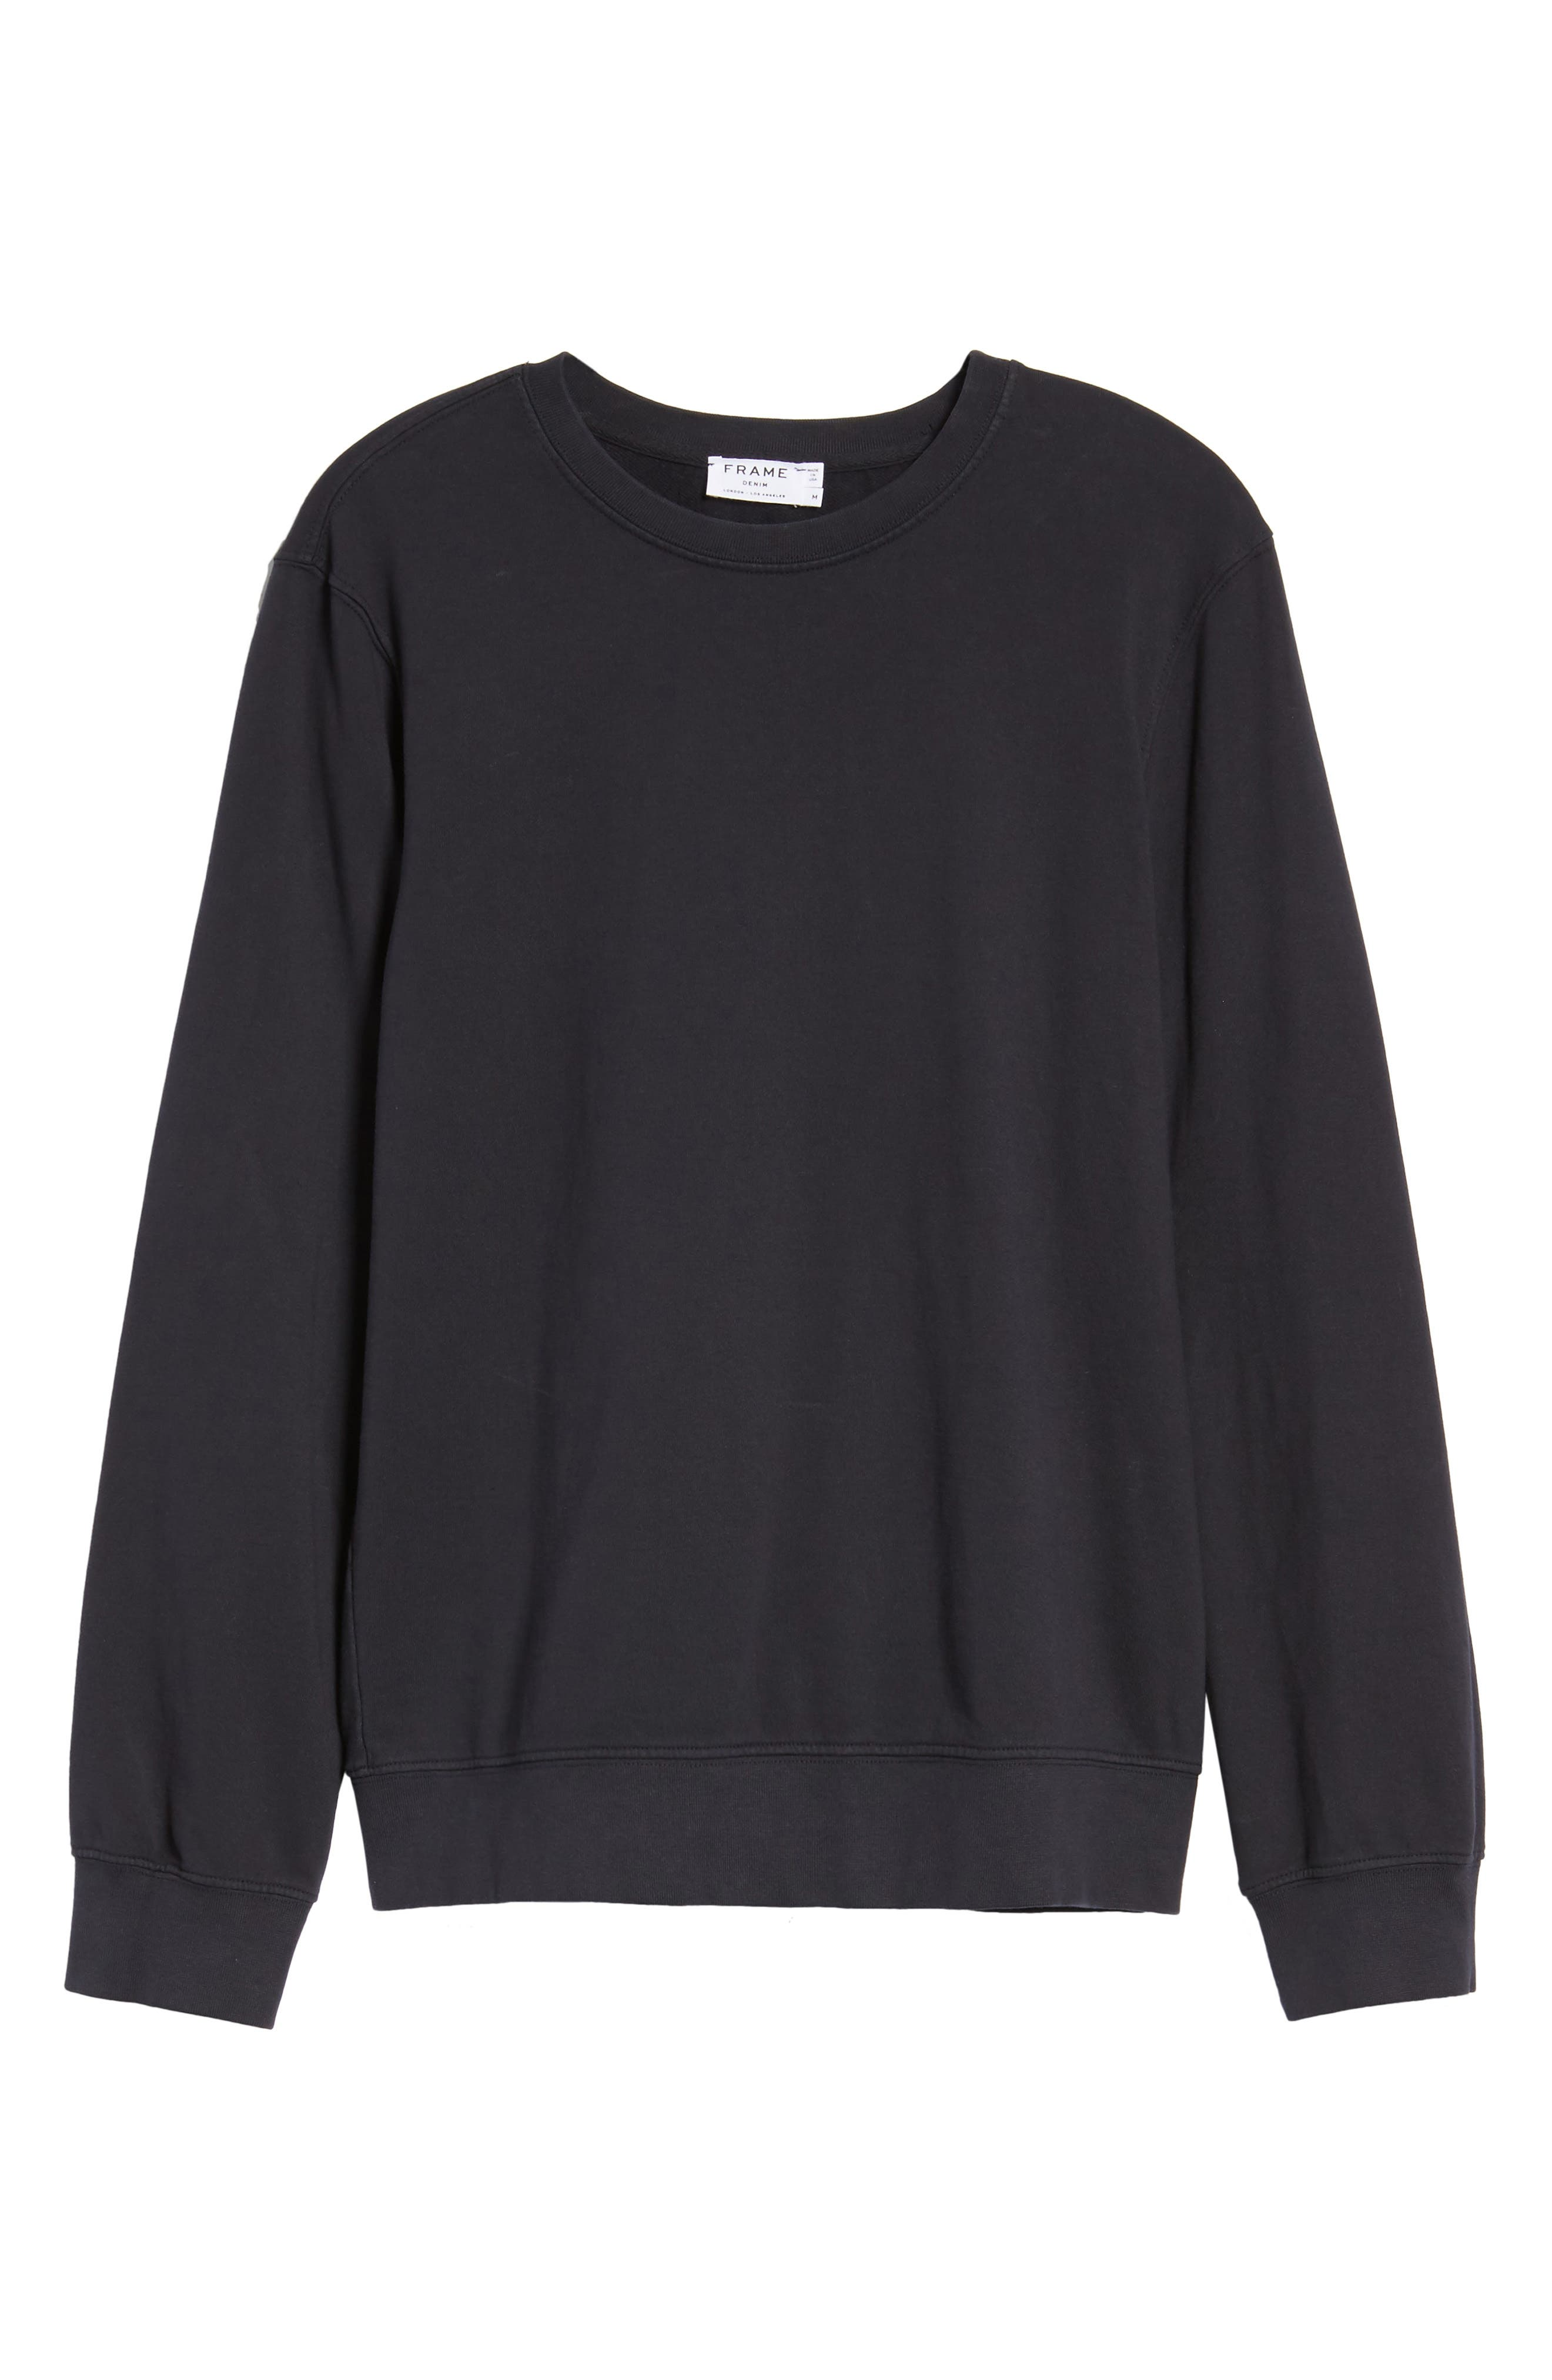 French Terry Sweatshirt,                             Alternate thumbnail 18, color,